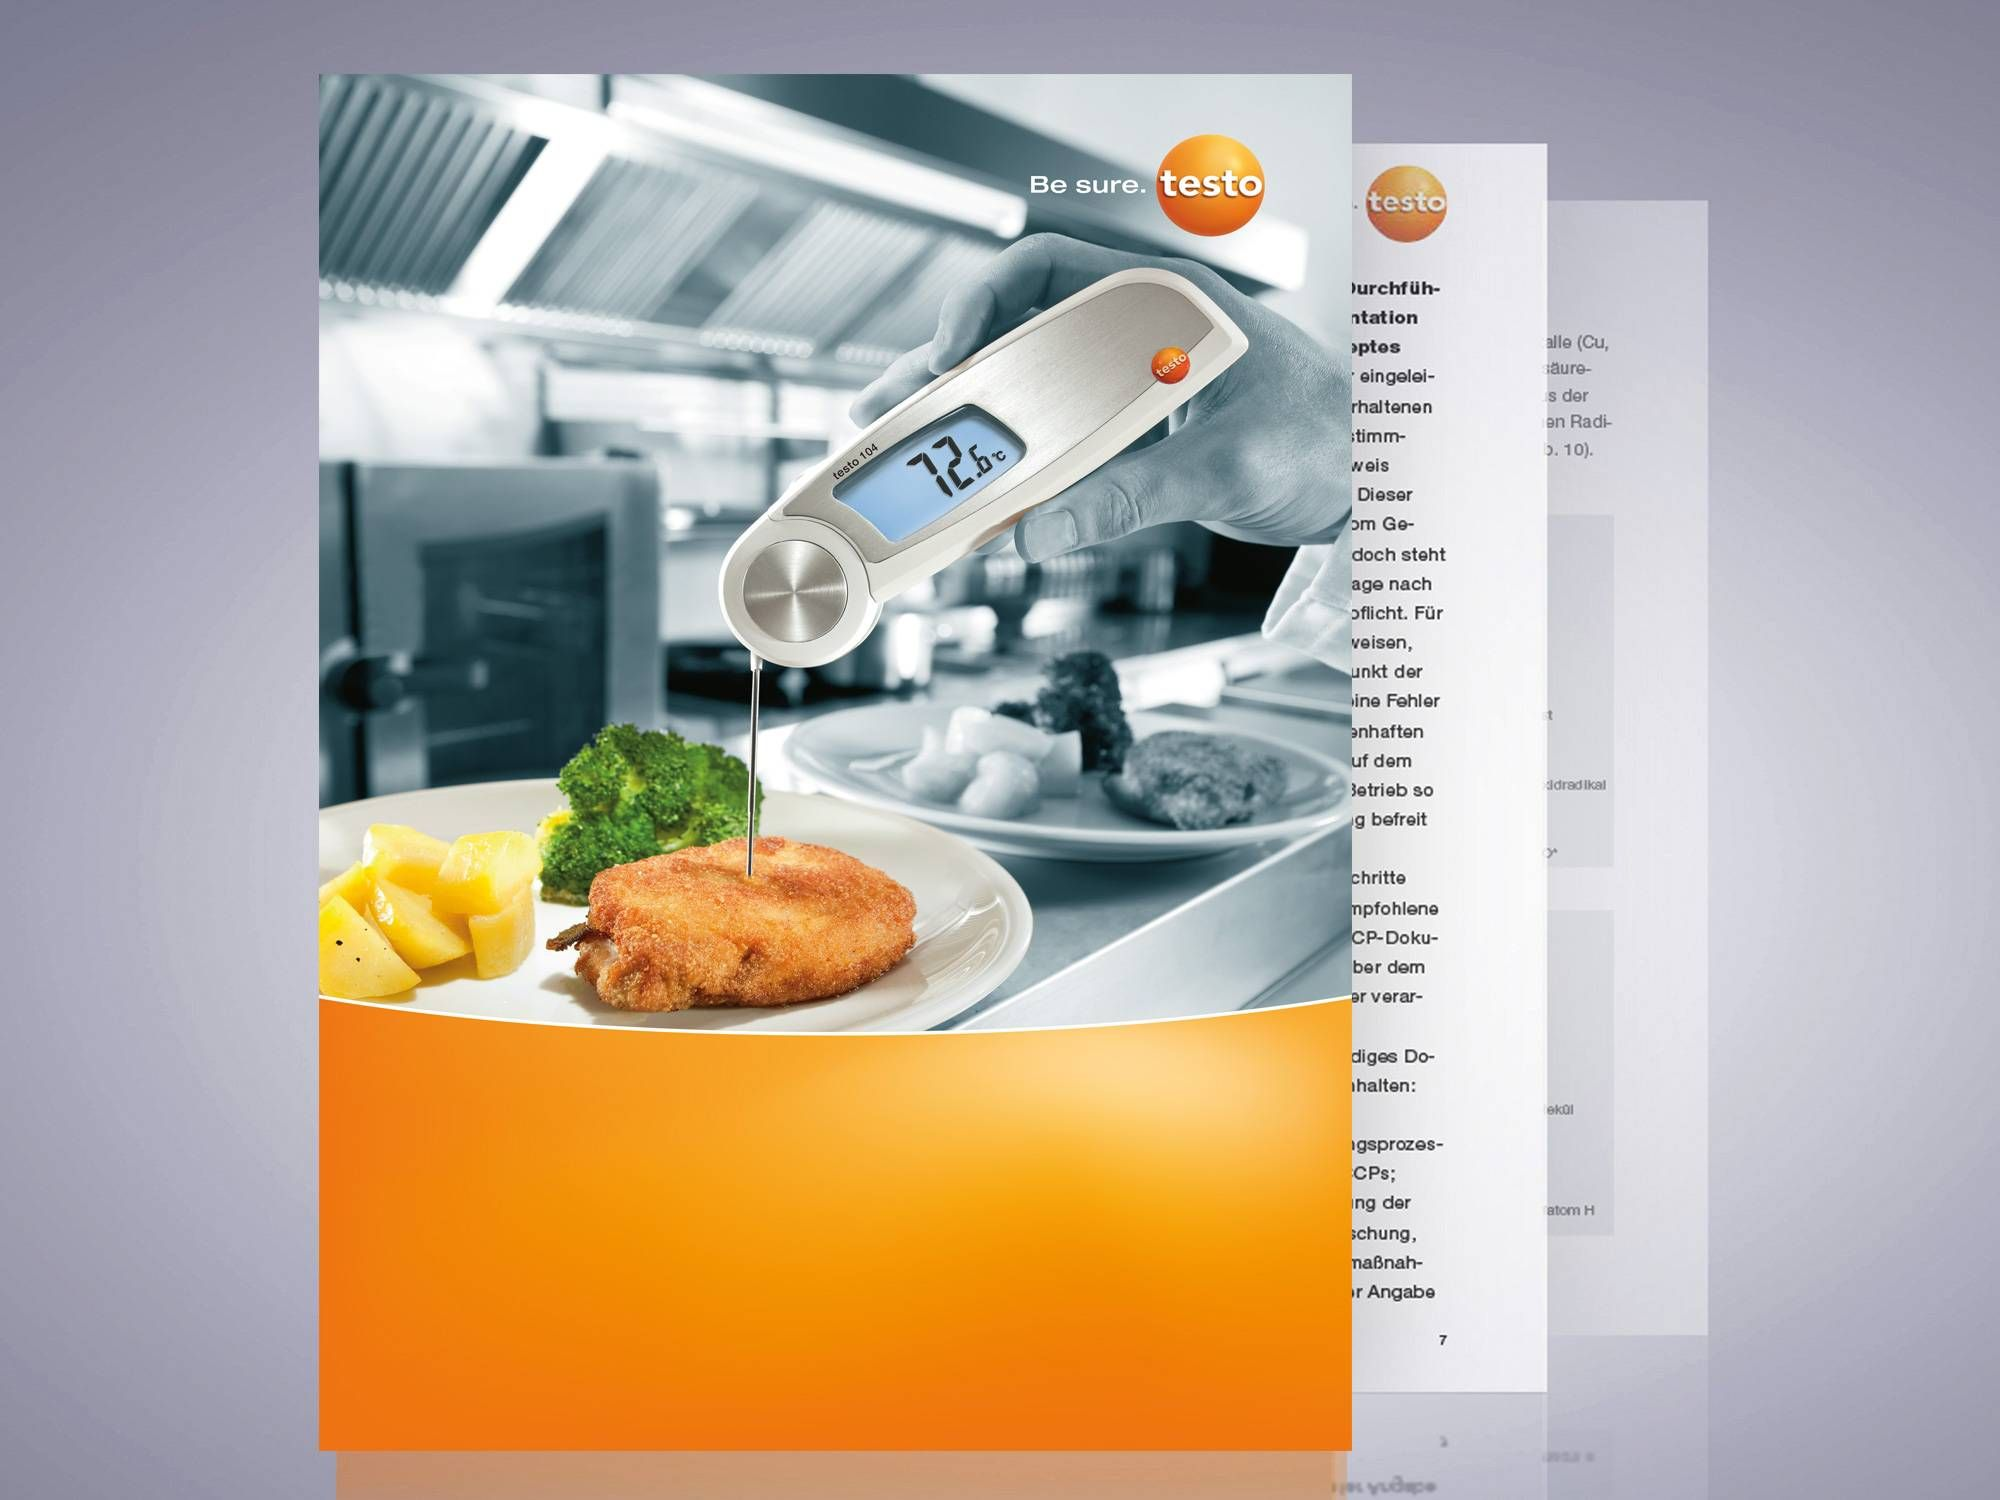 Food quality assurance and adherence to HACCP regulations in gastronomy